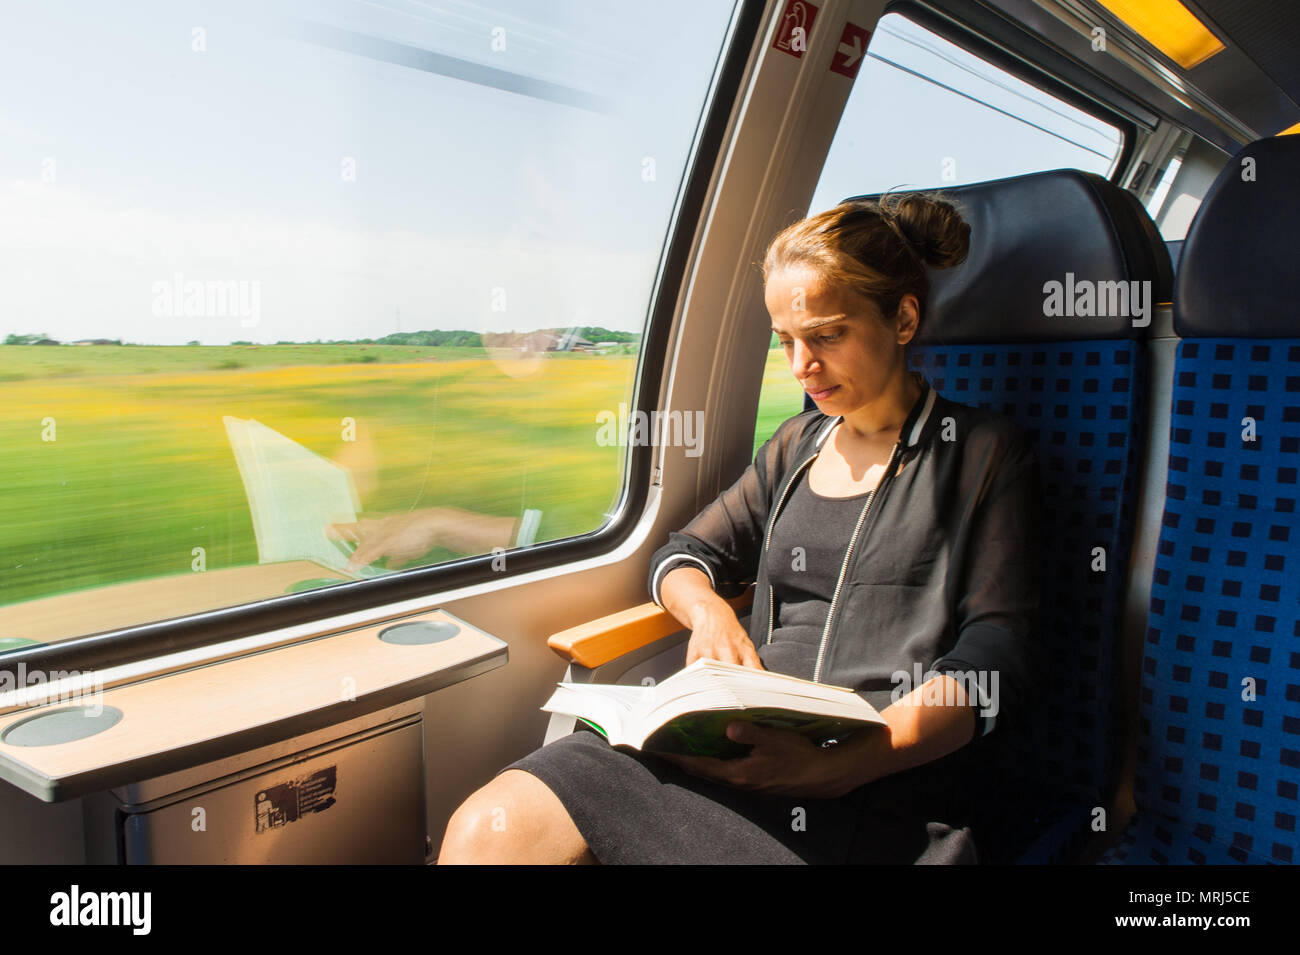 Young woman reading a book while travelling by train - Stock Image